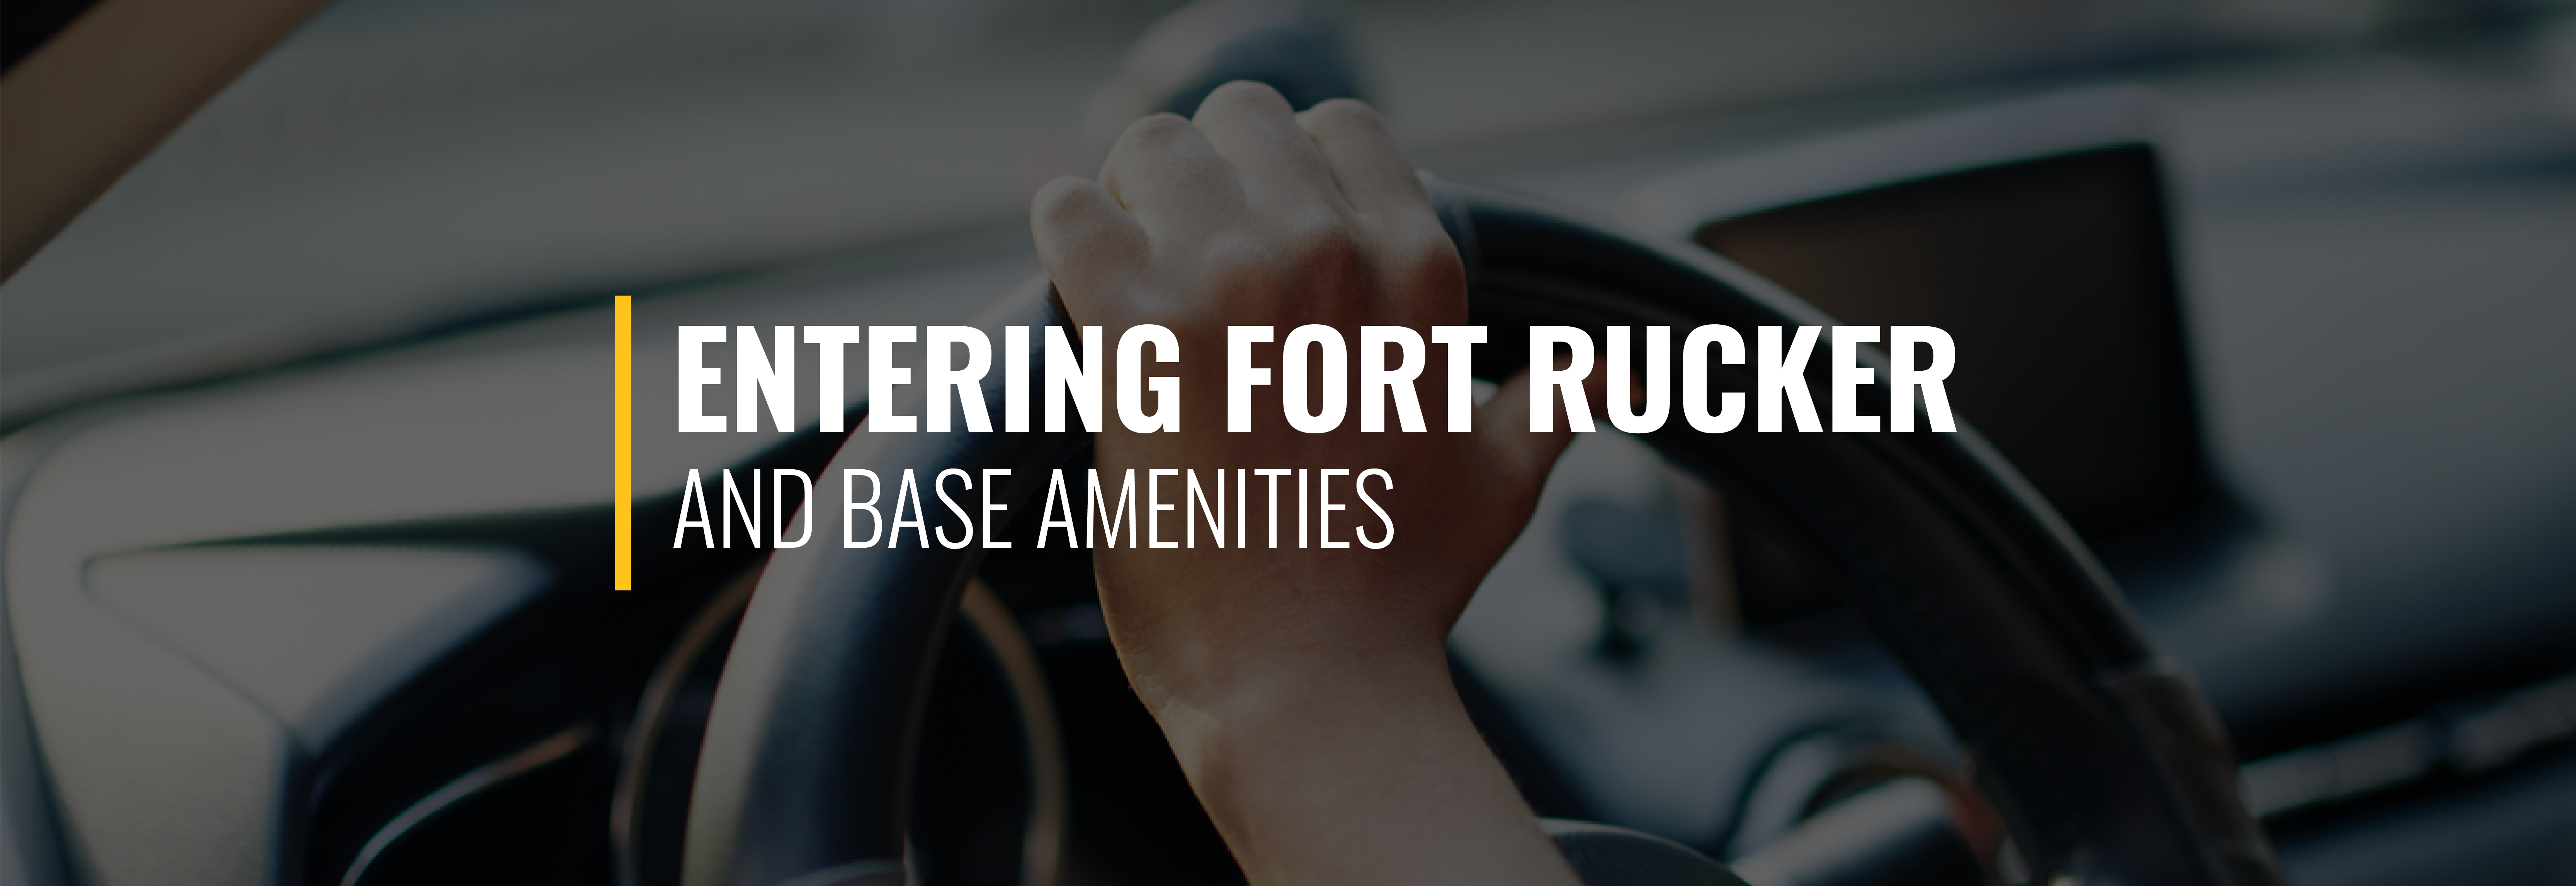 Entering Fort Rucker and Base Amenities